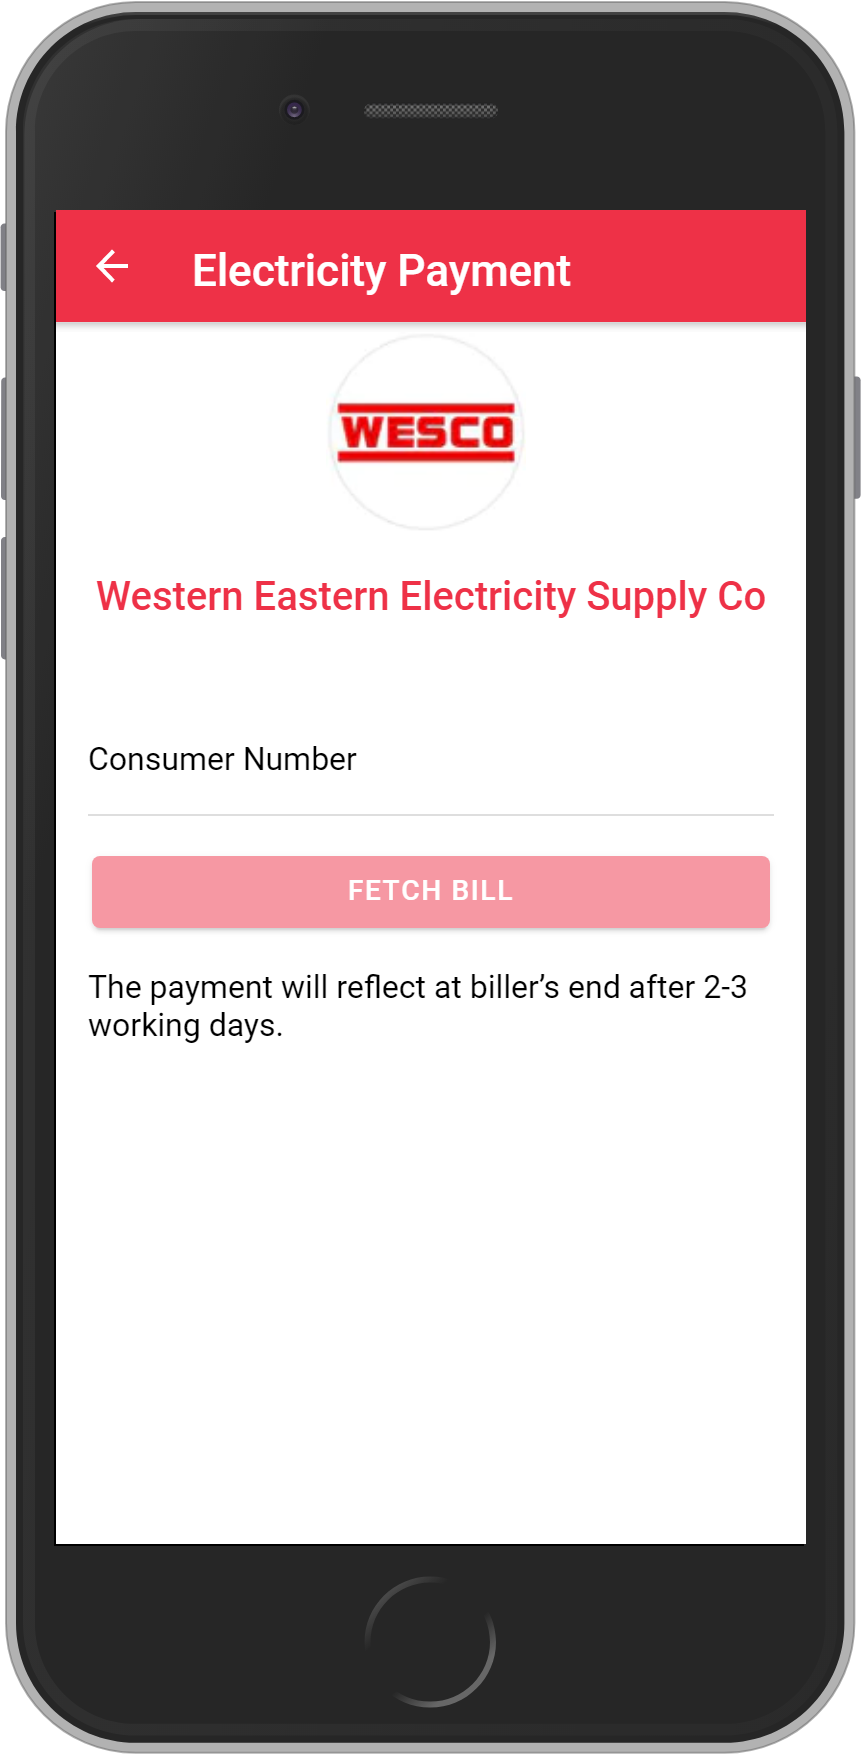 Get UNLIMITED <b>0.1%</b> CASHBACK on WESCO Utility Bill Payment.